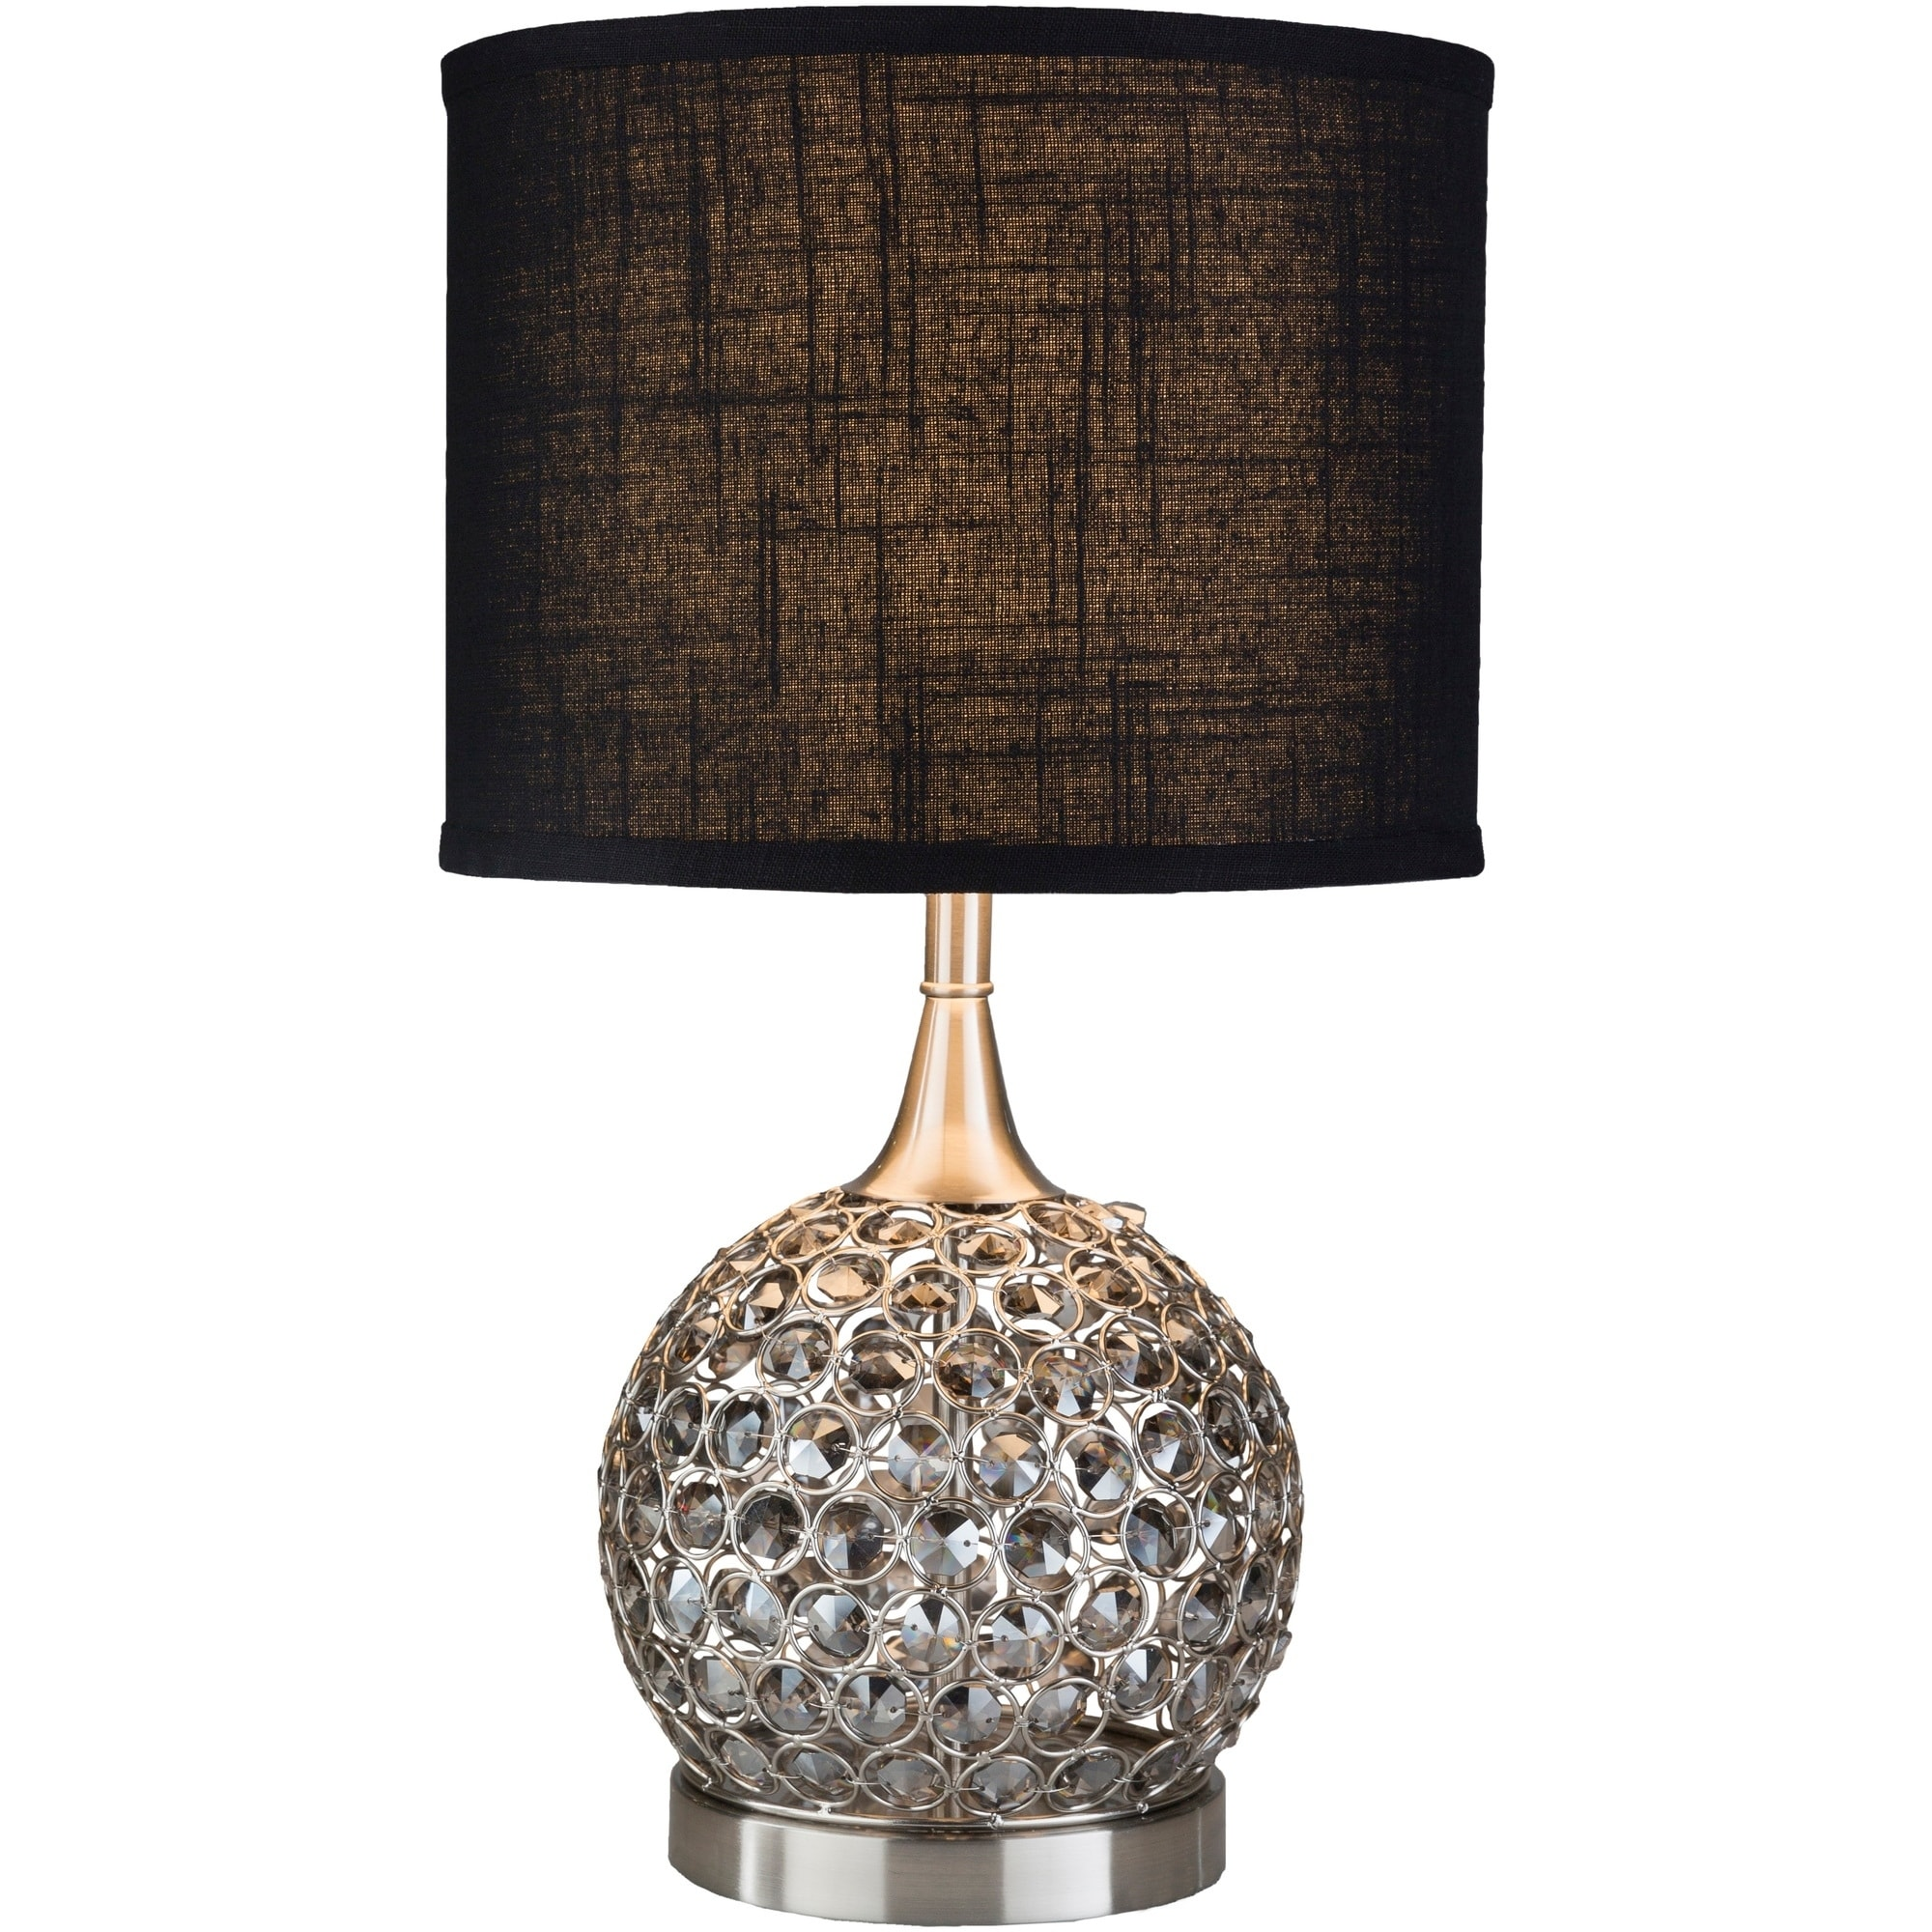 Kanli Table Lamp With Silver Base